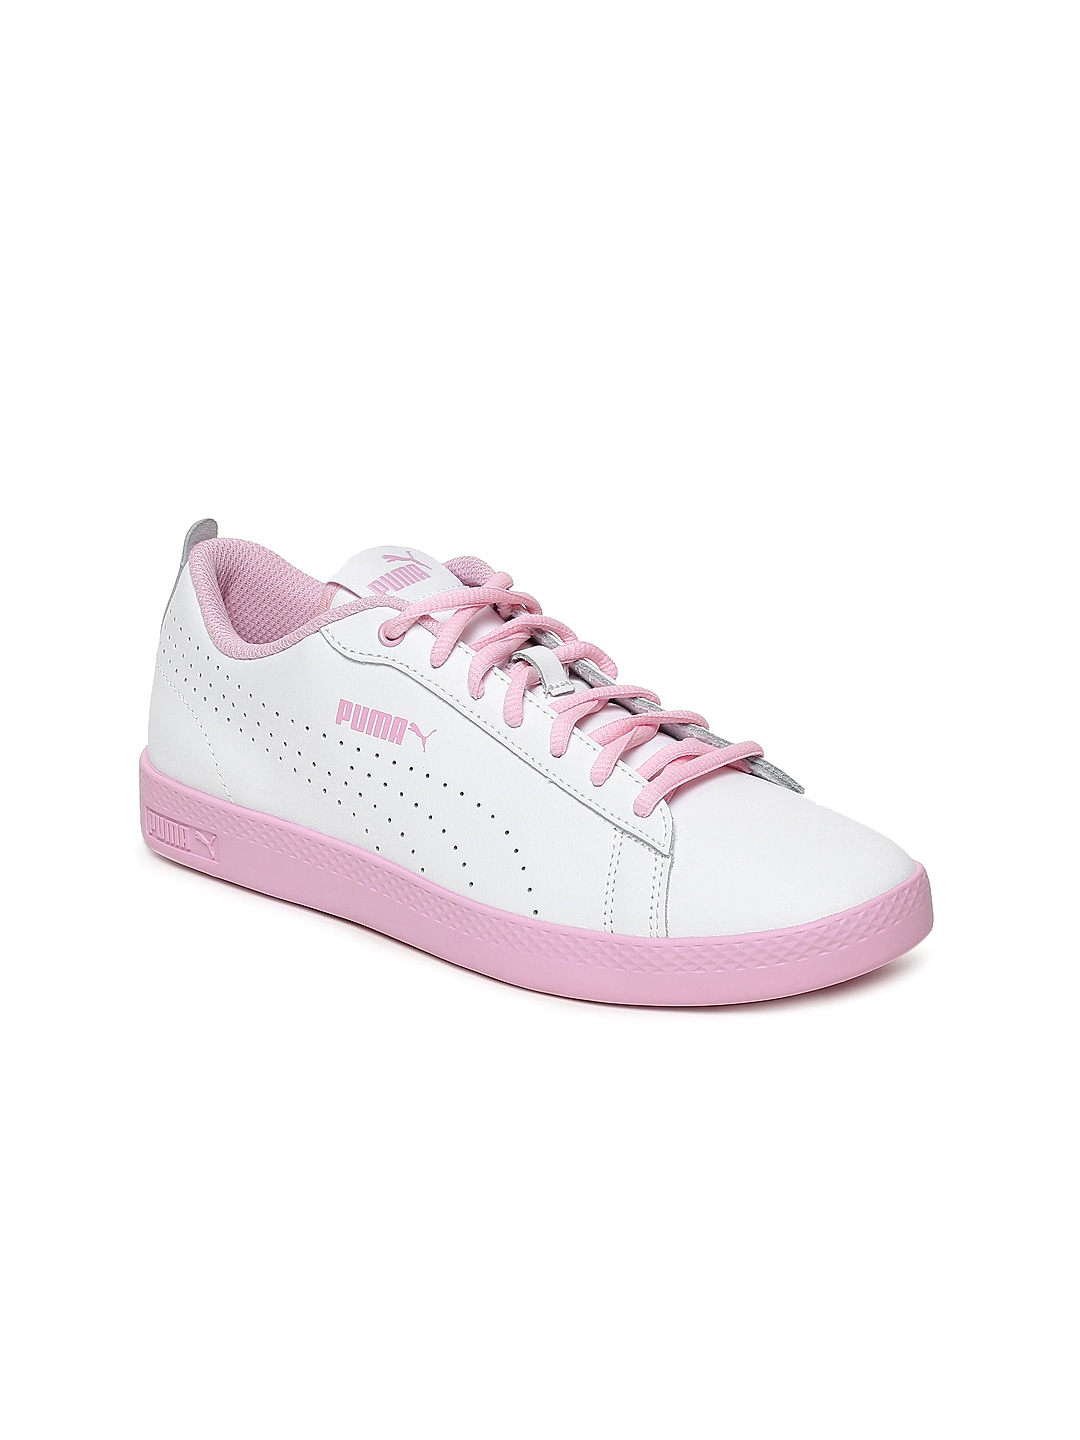 4ce1a83186 Puma Women White & Pink Smash v2 L Leather Sneakers